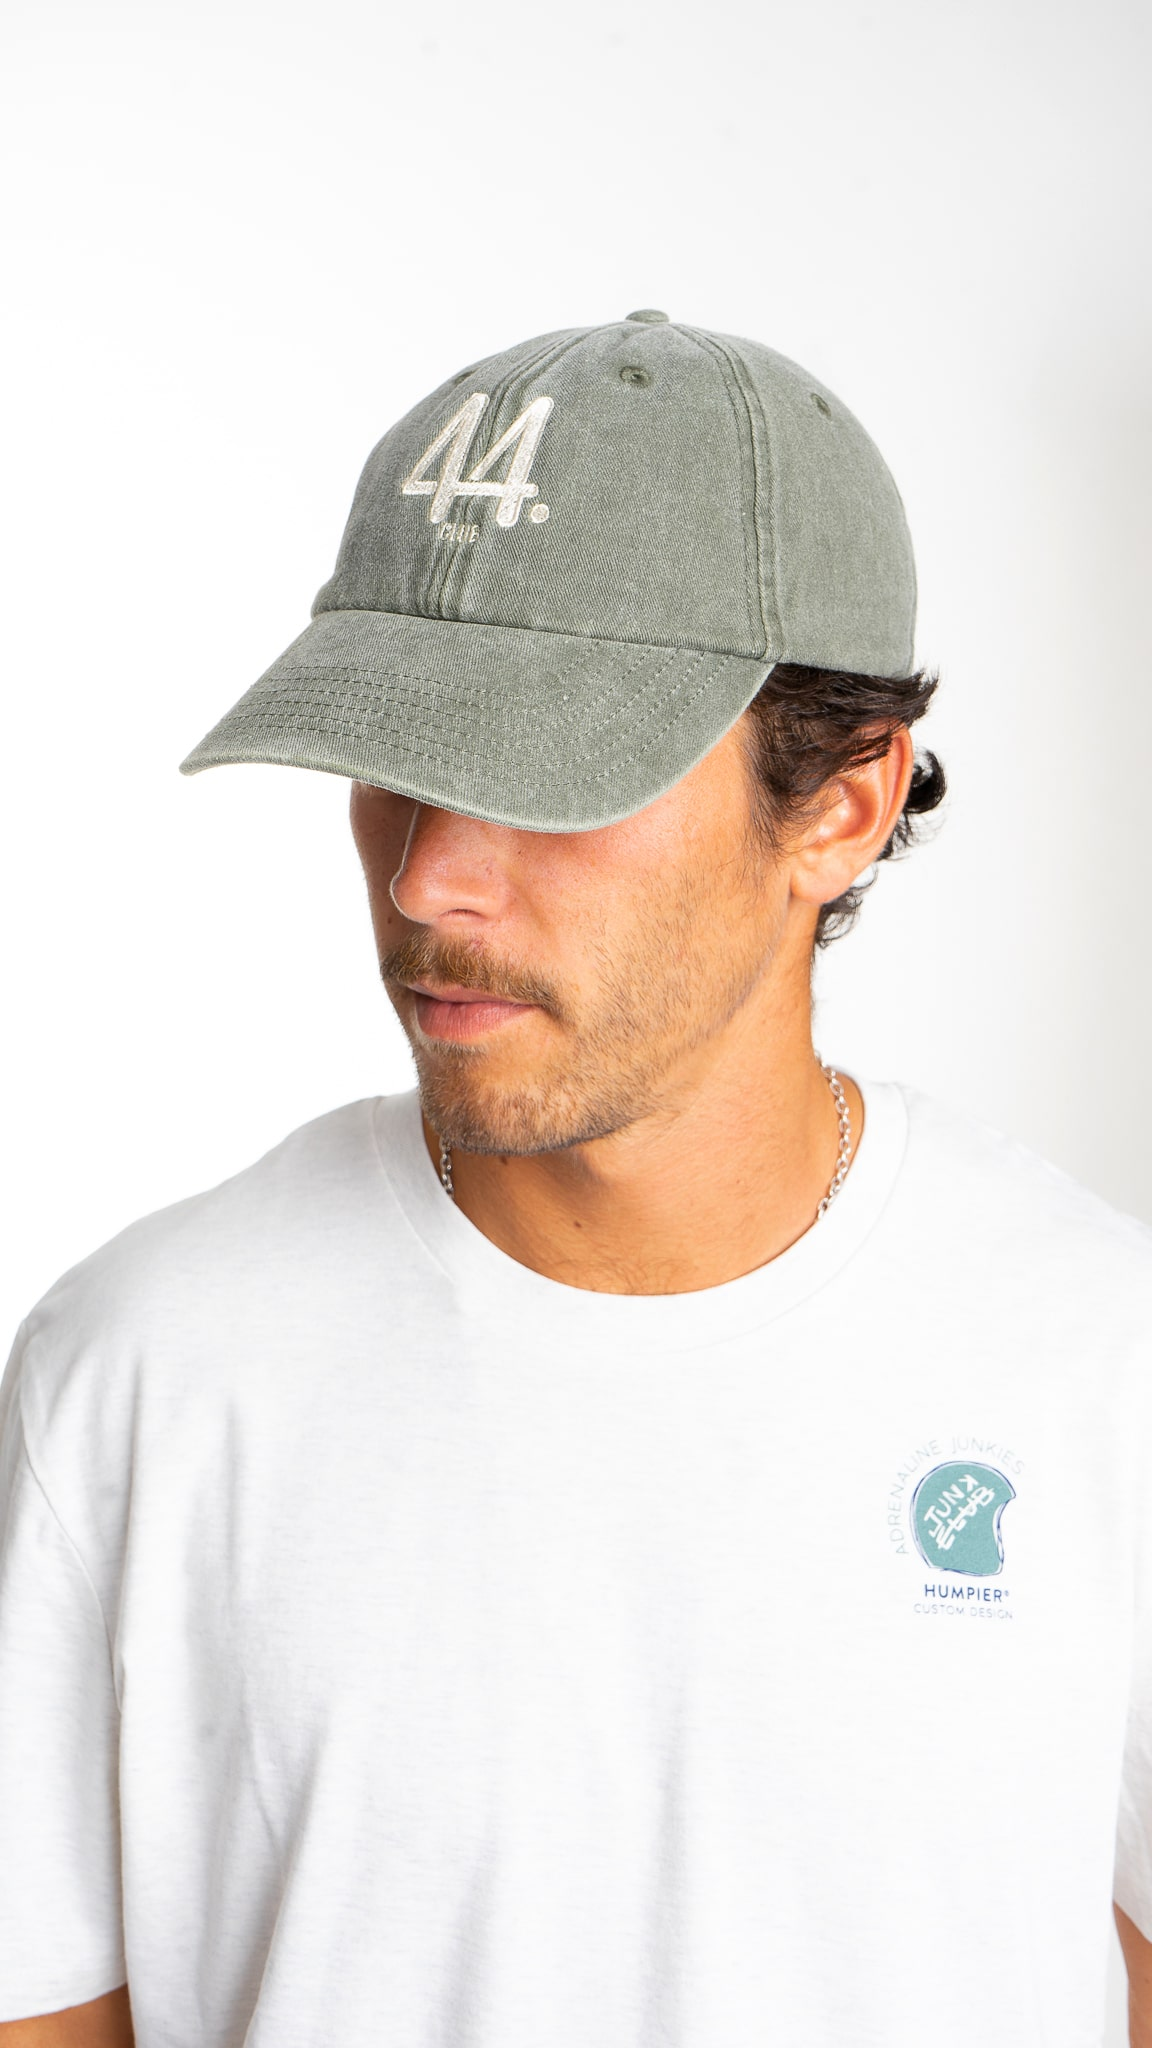 Gorra Humpier 44 Club